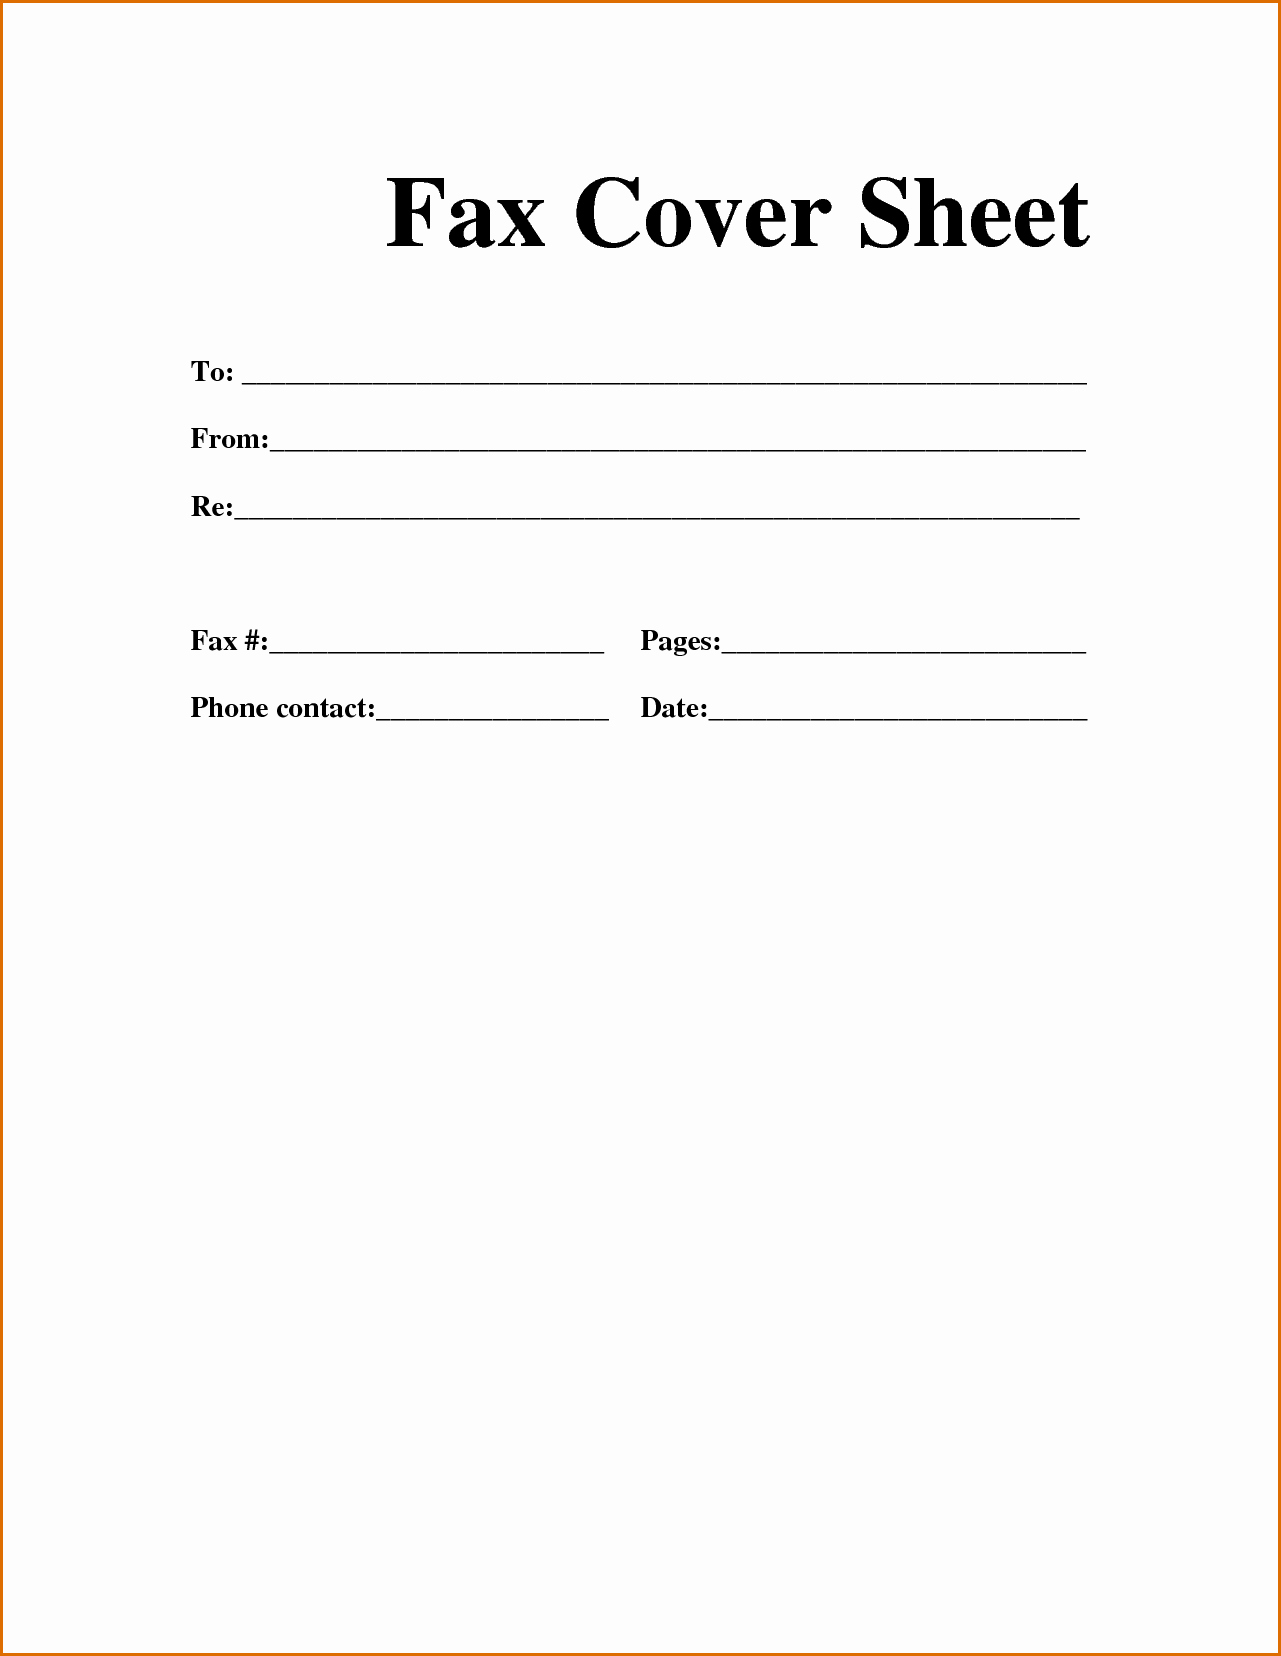 How to format A Fax Inspirational 3 Example Of Fax Cover Sheet